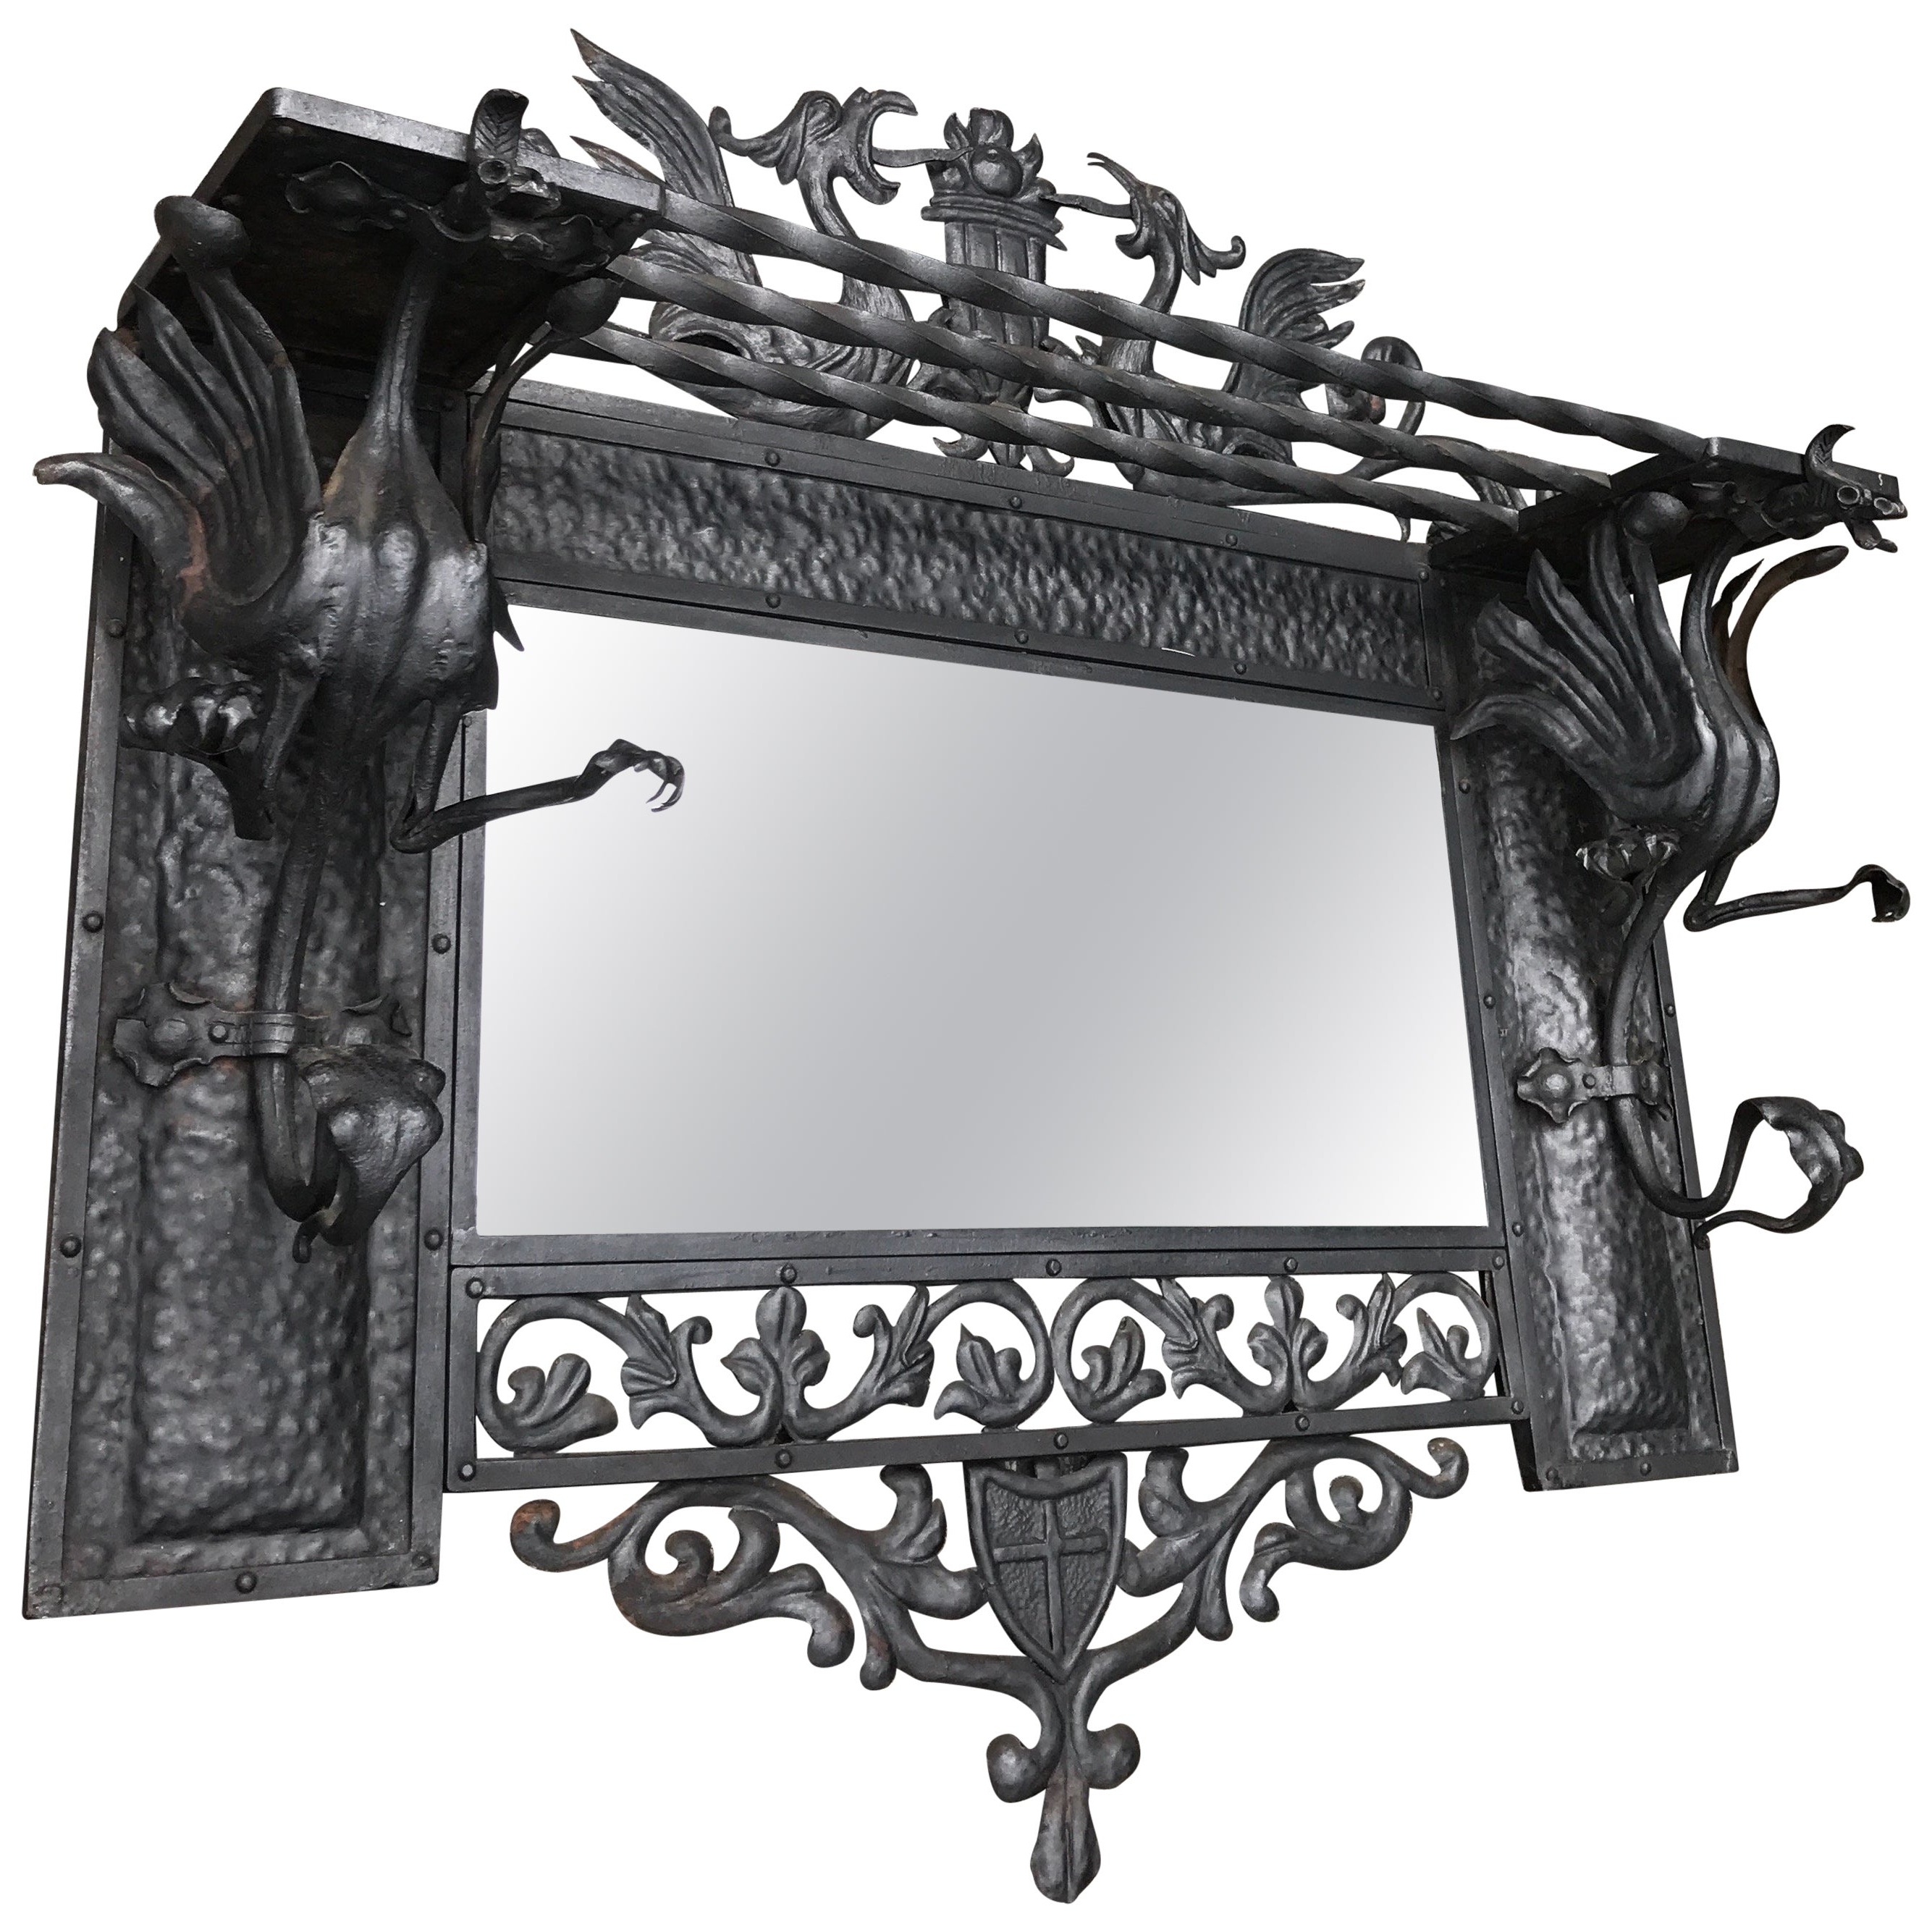 Newest Stunning Arts And Crafts Wrought Iron Art Wall Coat Rack / Mirror With Dragons Throughout Coat Rack Wall Mirrors (View 11 of 20)